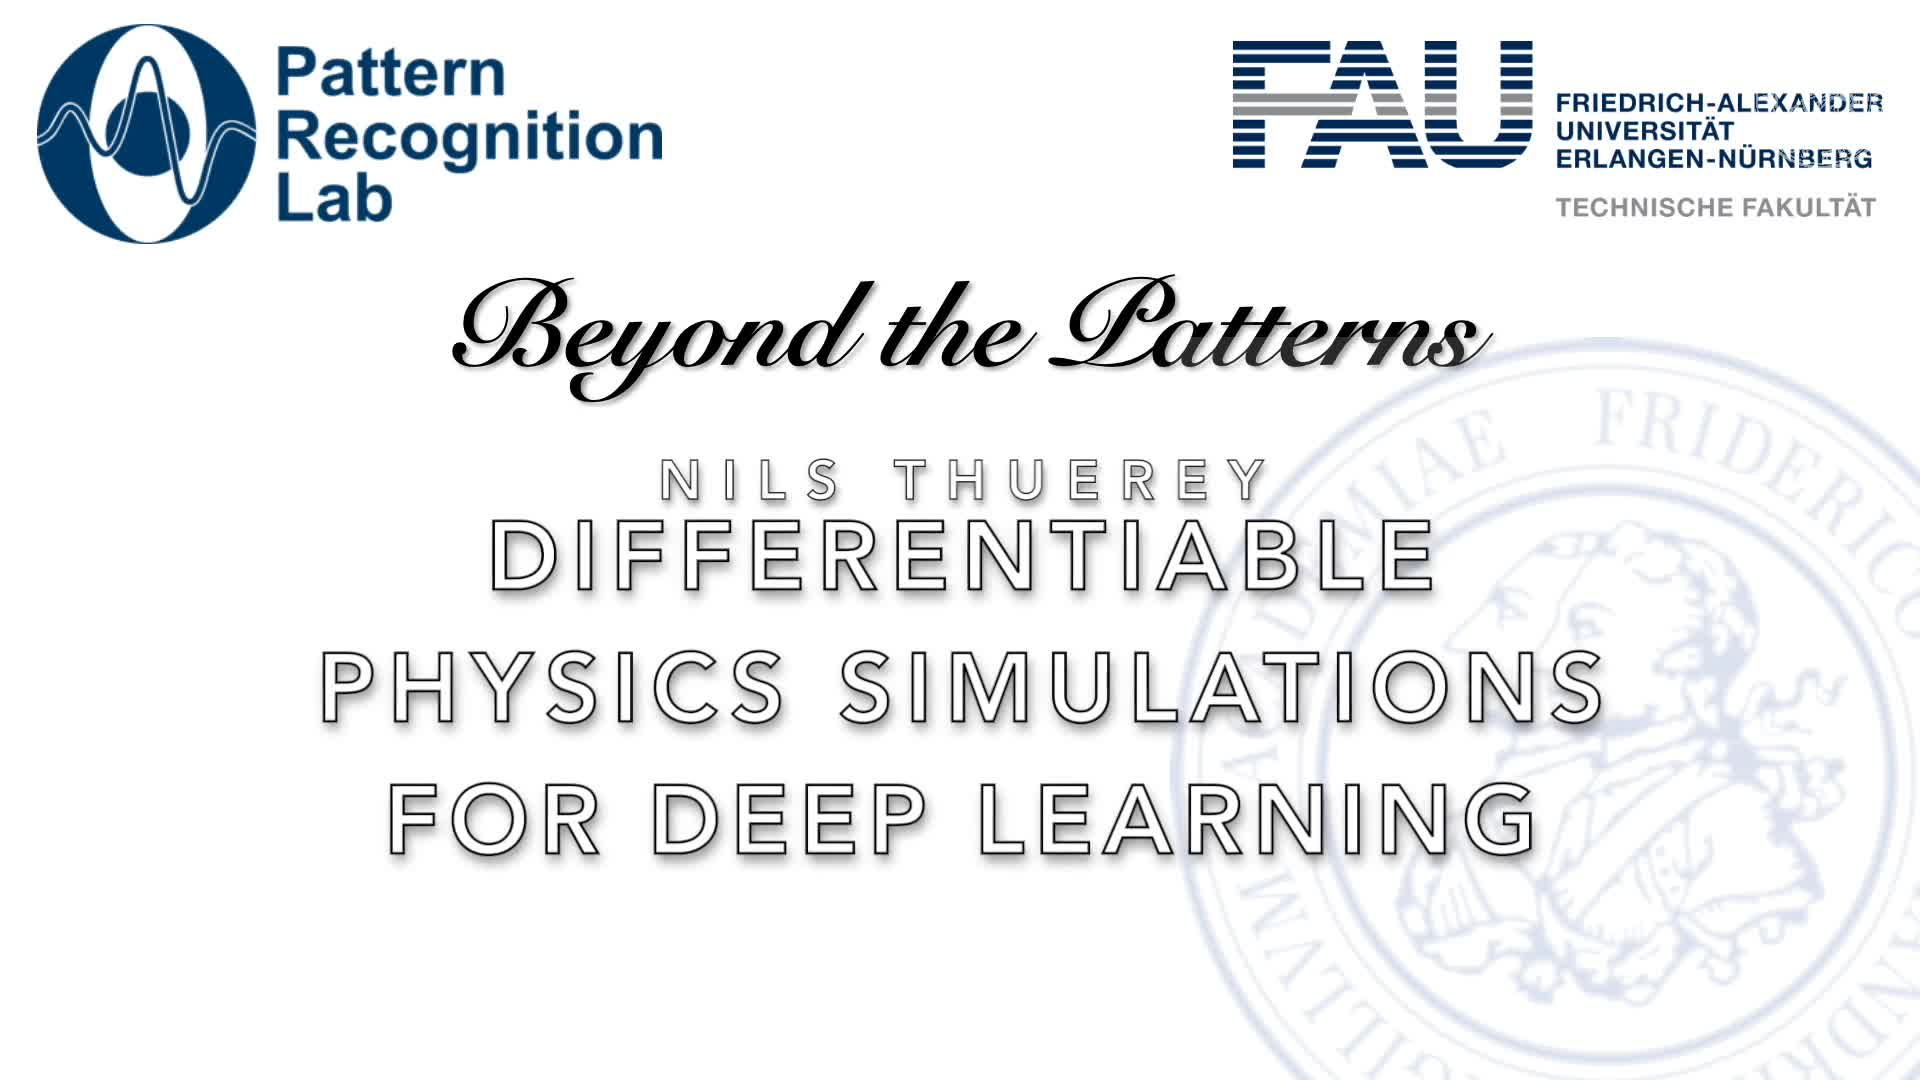 Beyond the Patterns - Nils Thuerey – Differentiable Physics Simulations for Deep Learning preview image